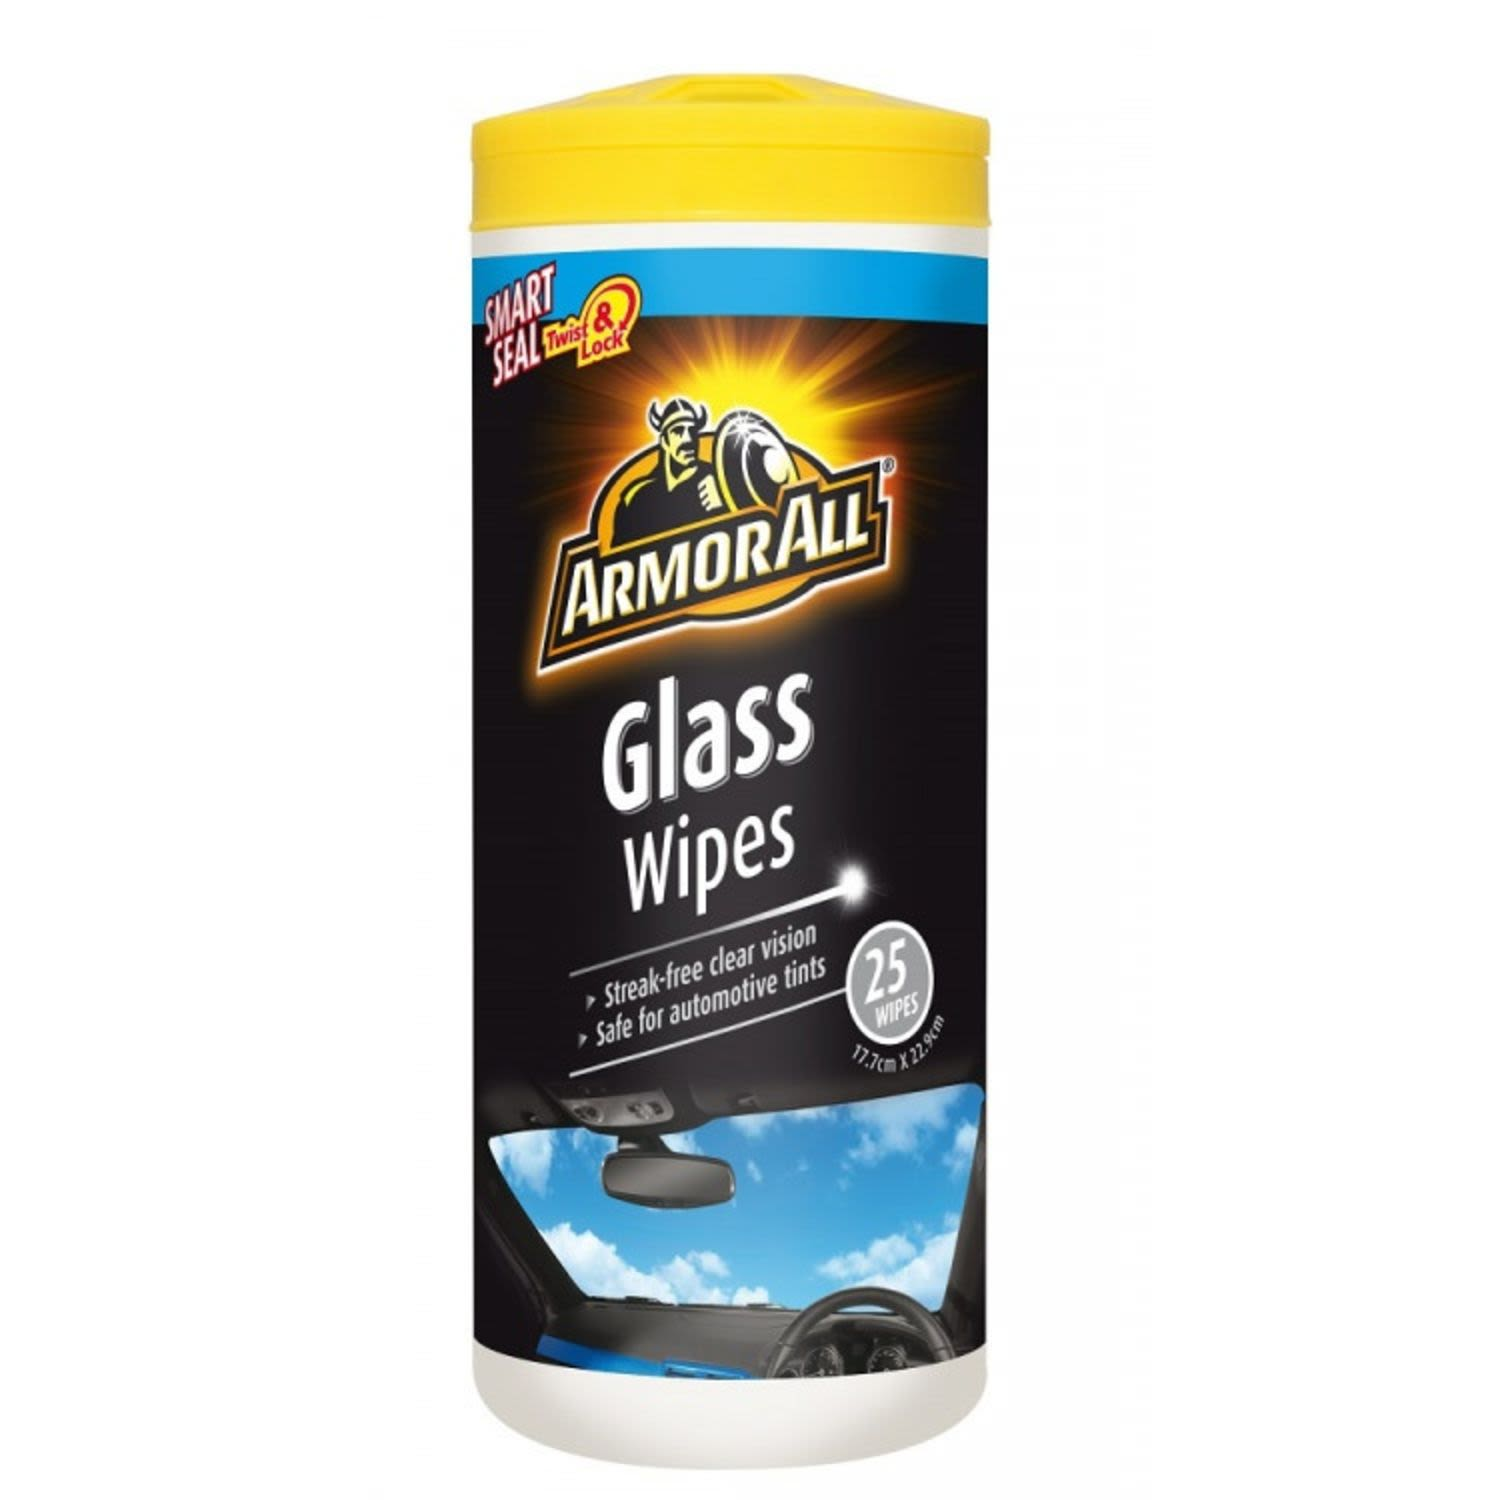 Armor All Glass Wipes, 25 Each